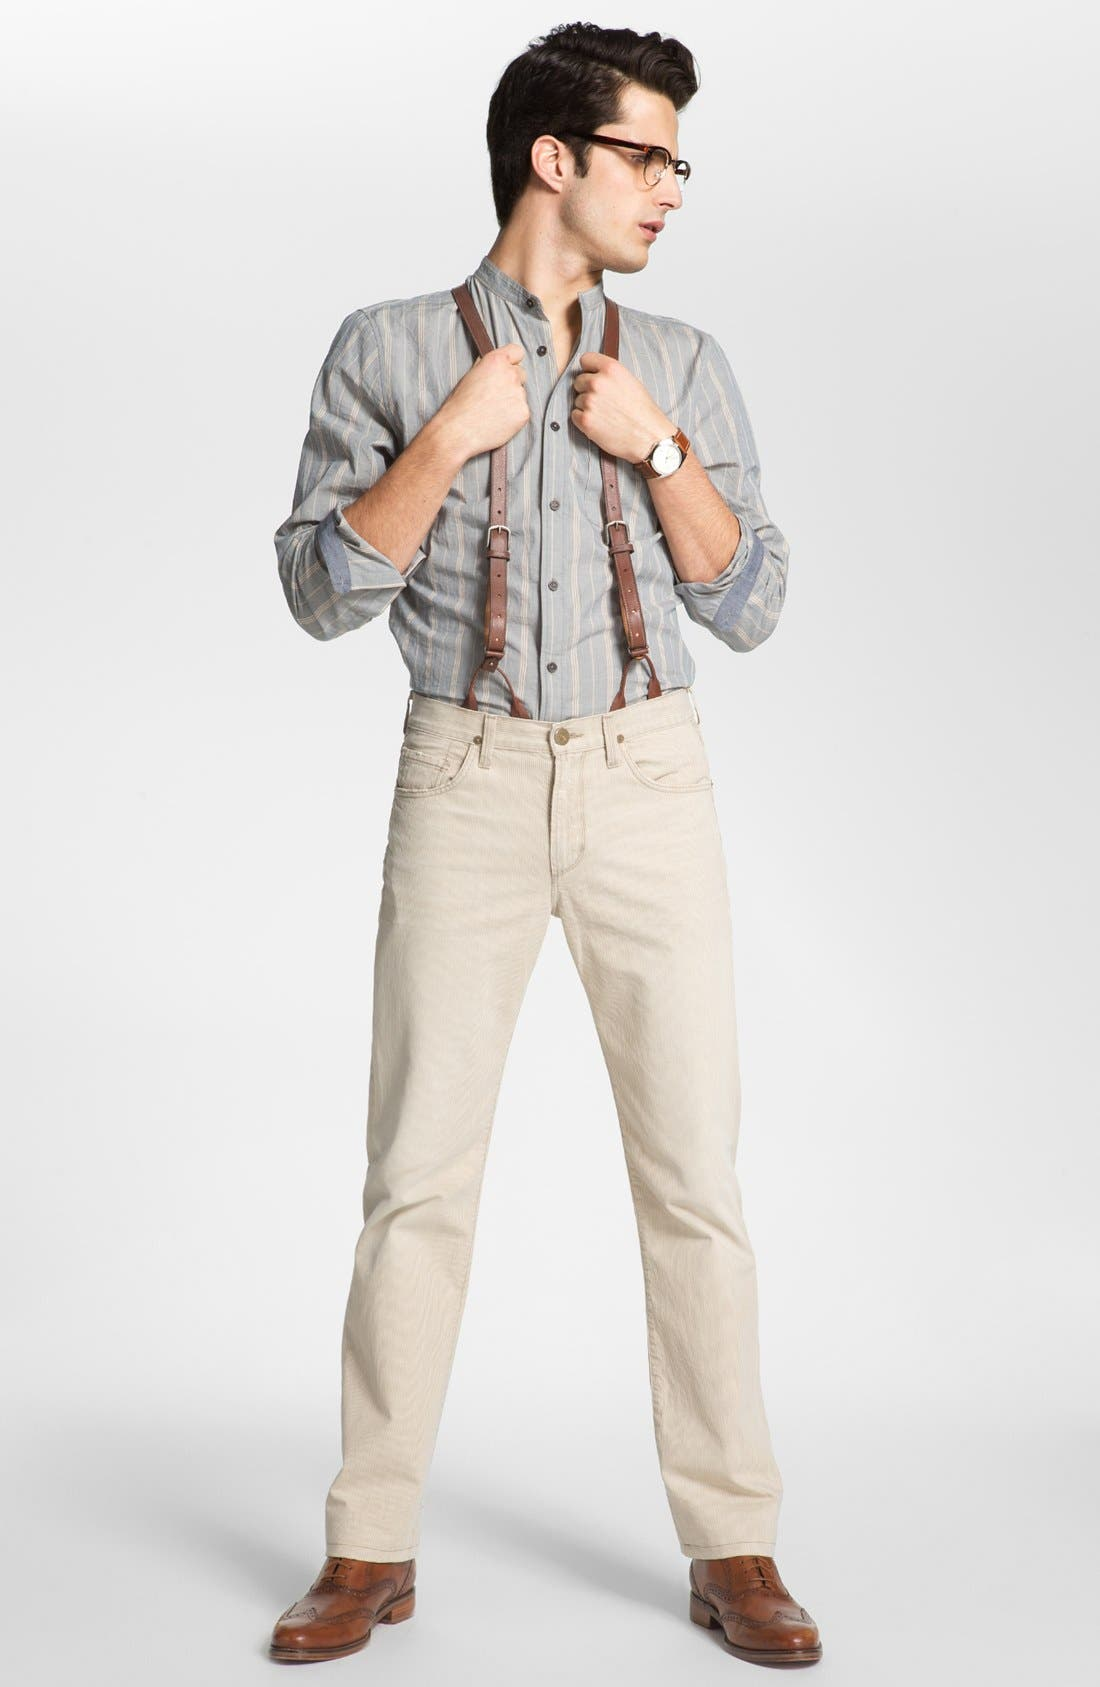 Alternate Image 1 Selected - 7 For All Mankind® Shirt & Citizens of Humanity Jeans